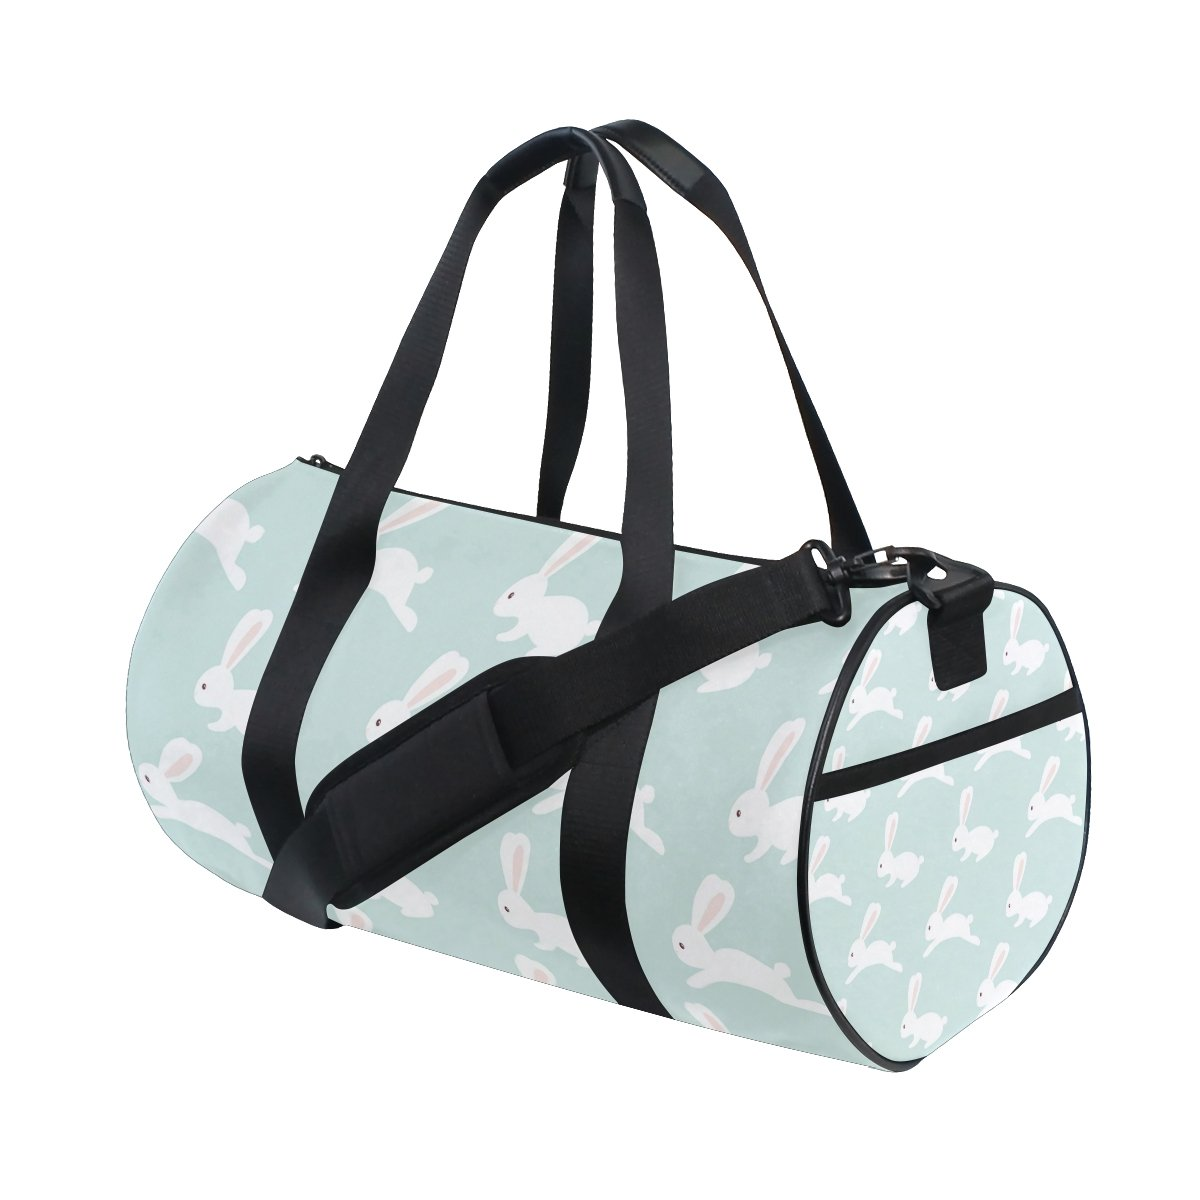 EVERUI Bunny Pattern On Blue Travel Duffle Bag Sports Luggage with Backpack Tote Gym Bag